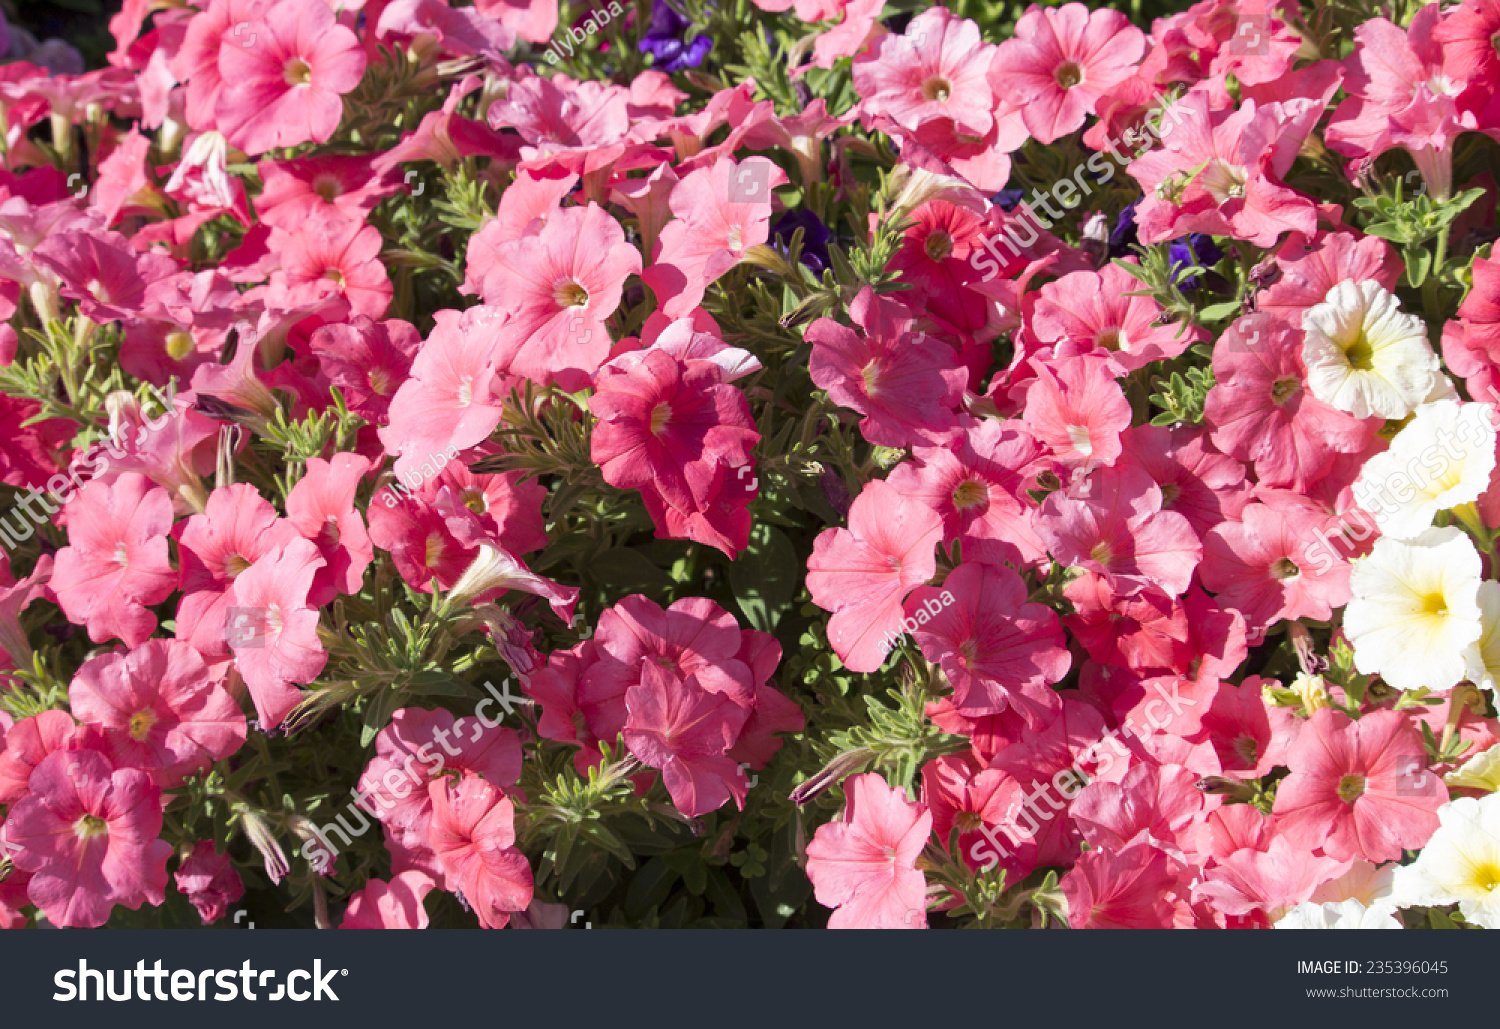 Cheerful Large Single Pink Flowers Of Annual Petunias Family